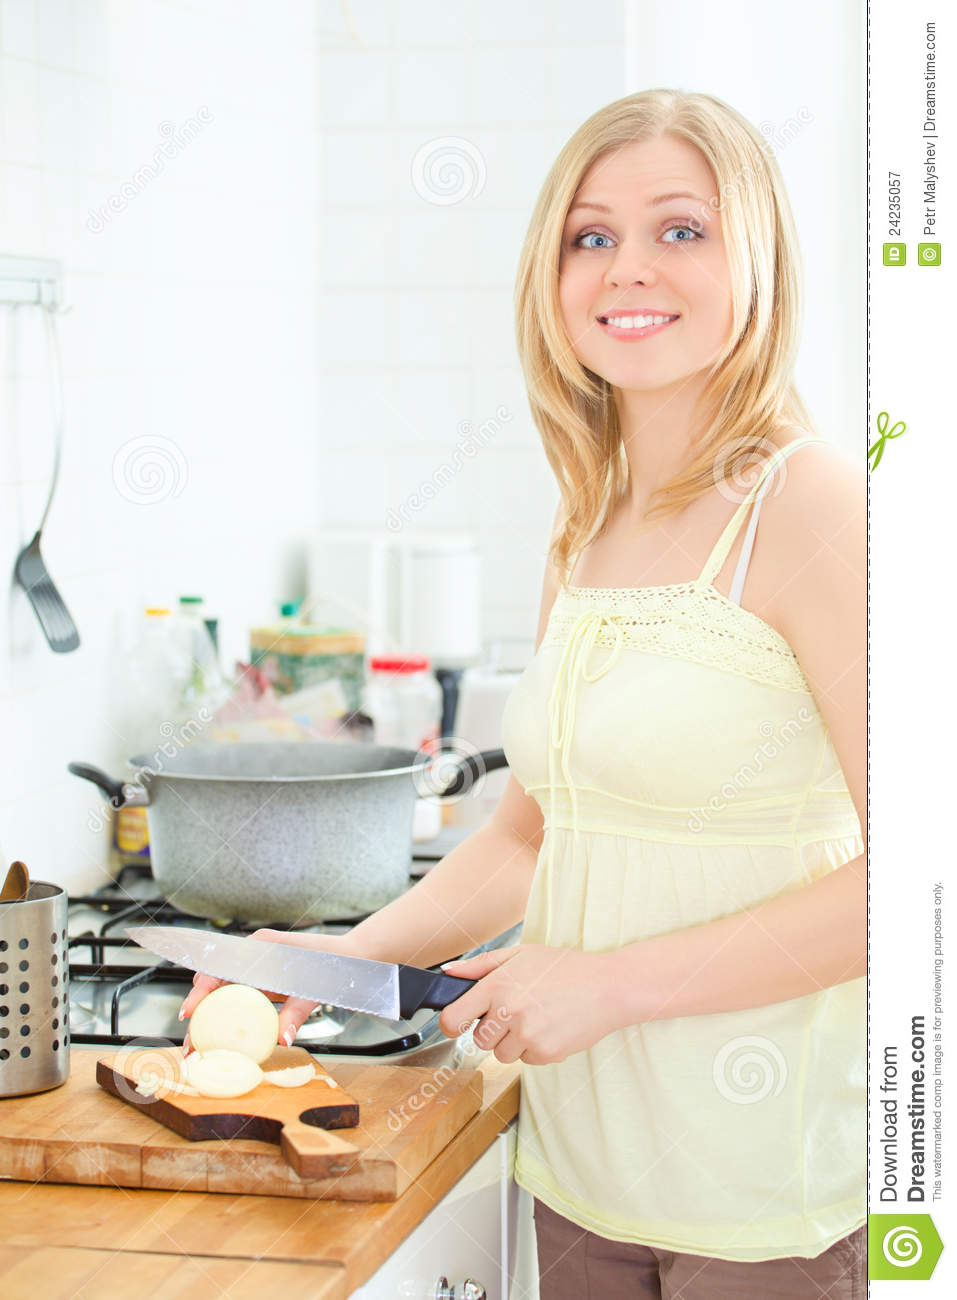 Cute girl cooking royalty free stock photography image 24235057 - Stylish cooking ...